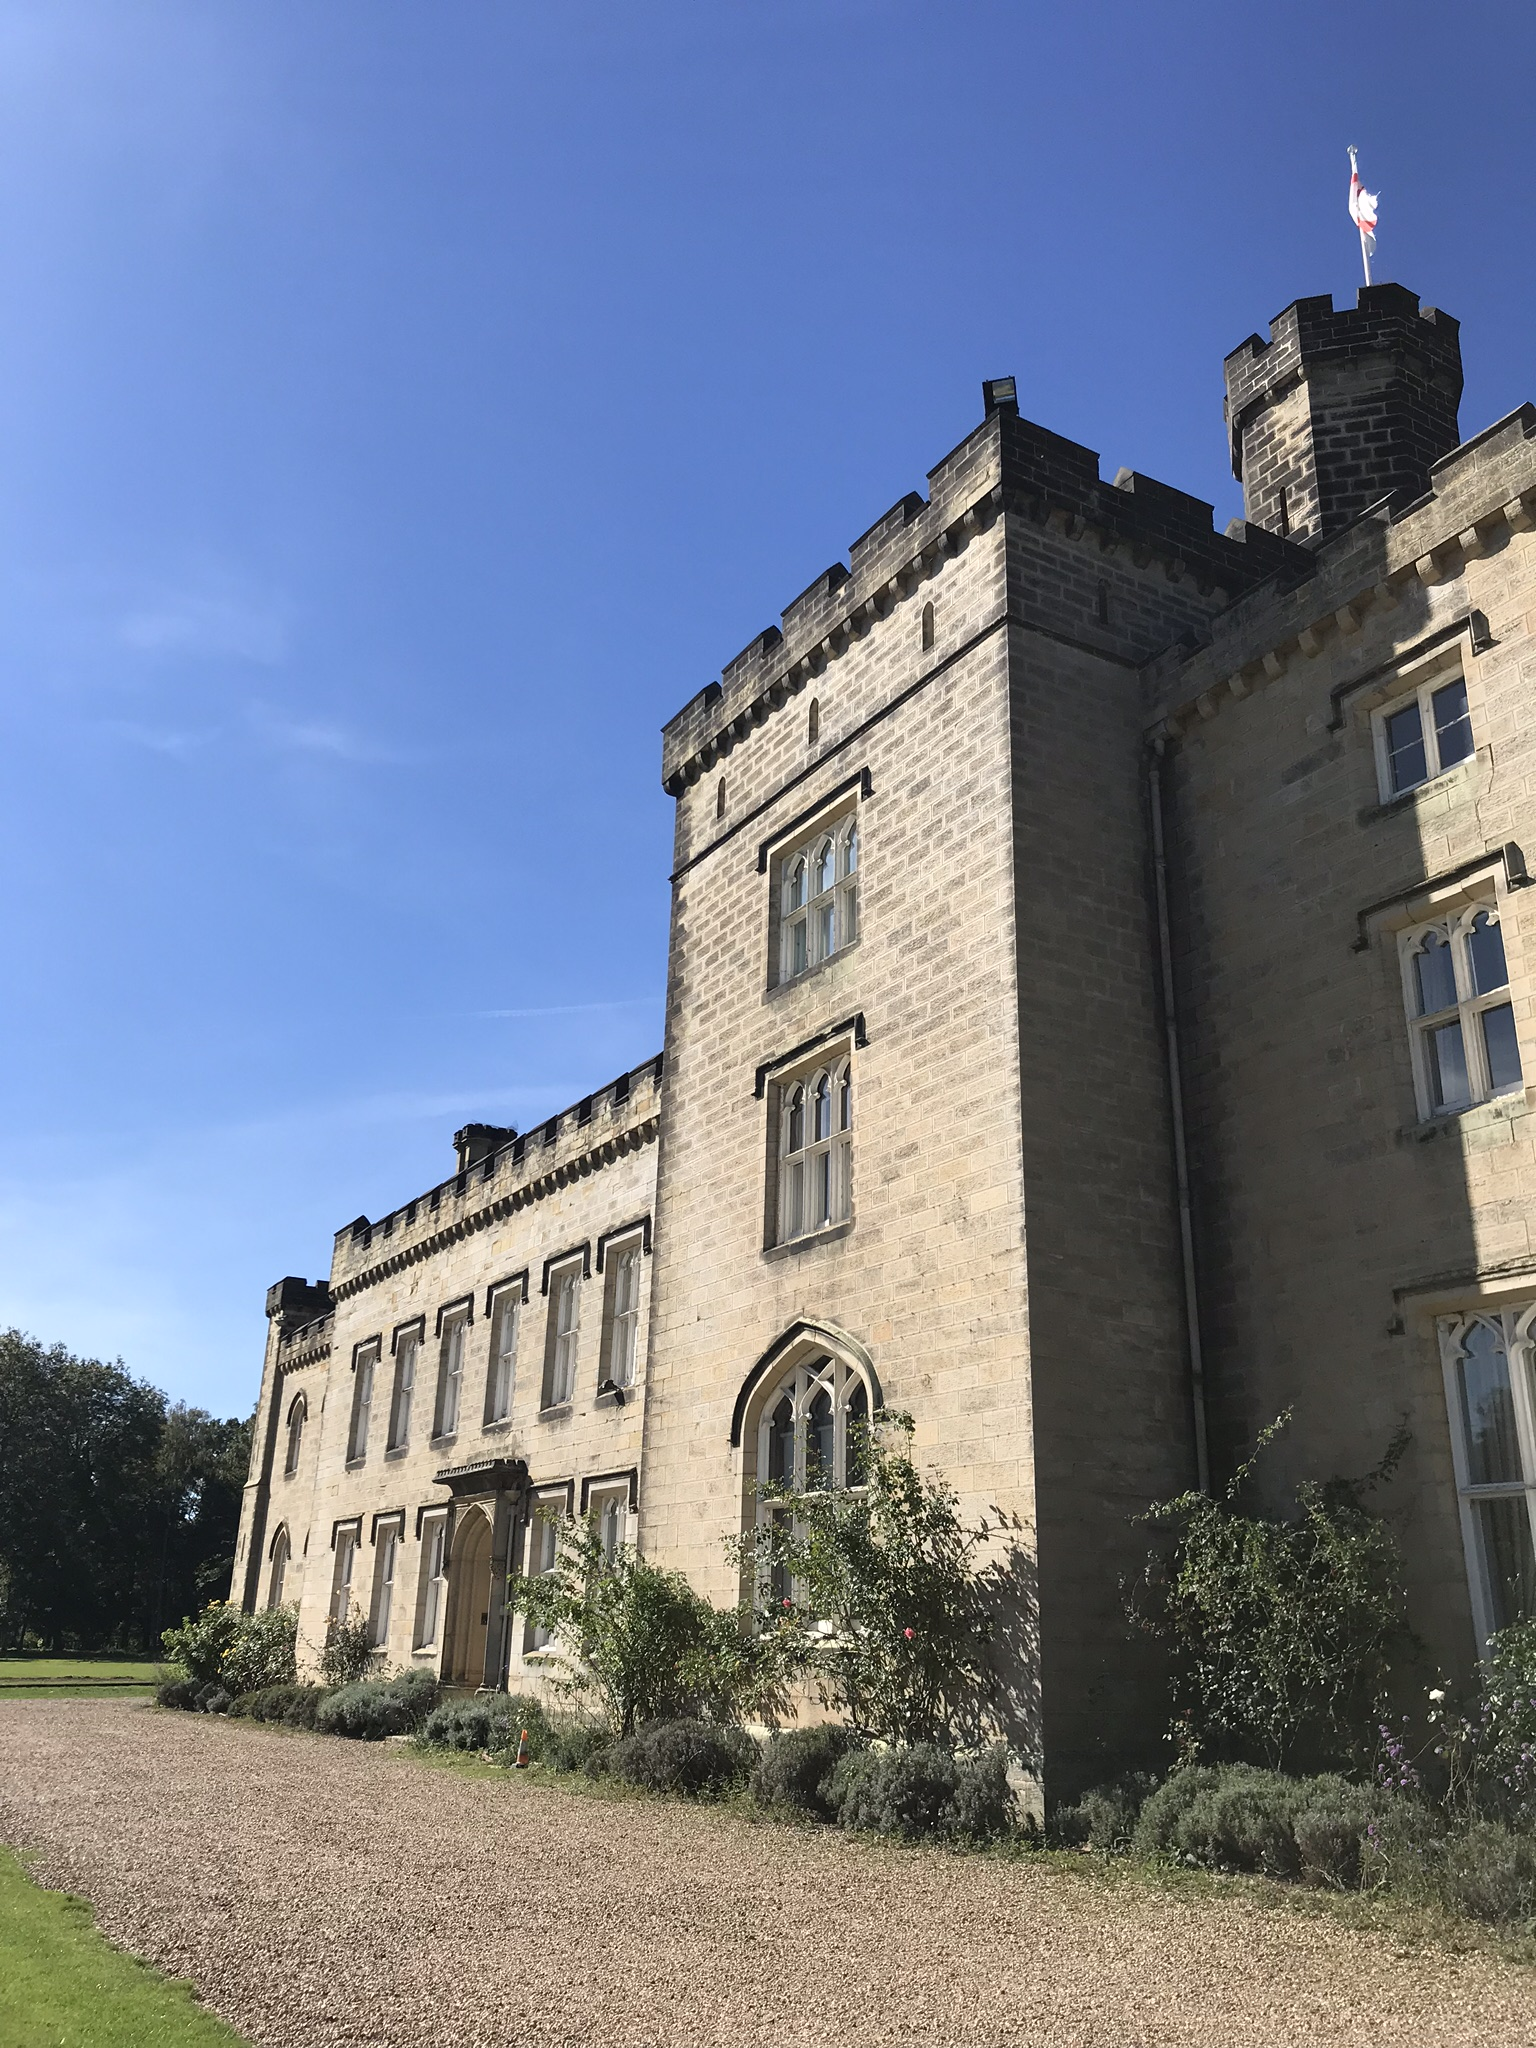 Image of Chiddingstone castle